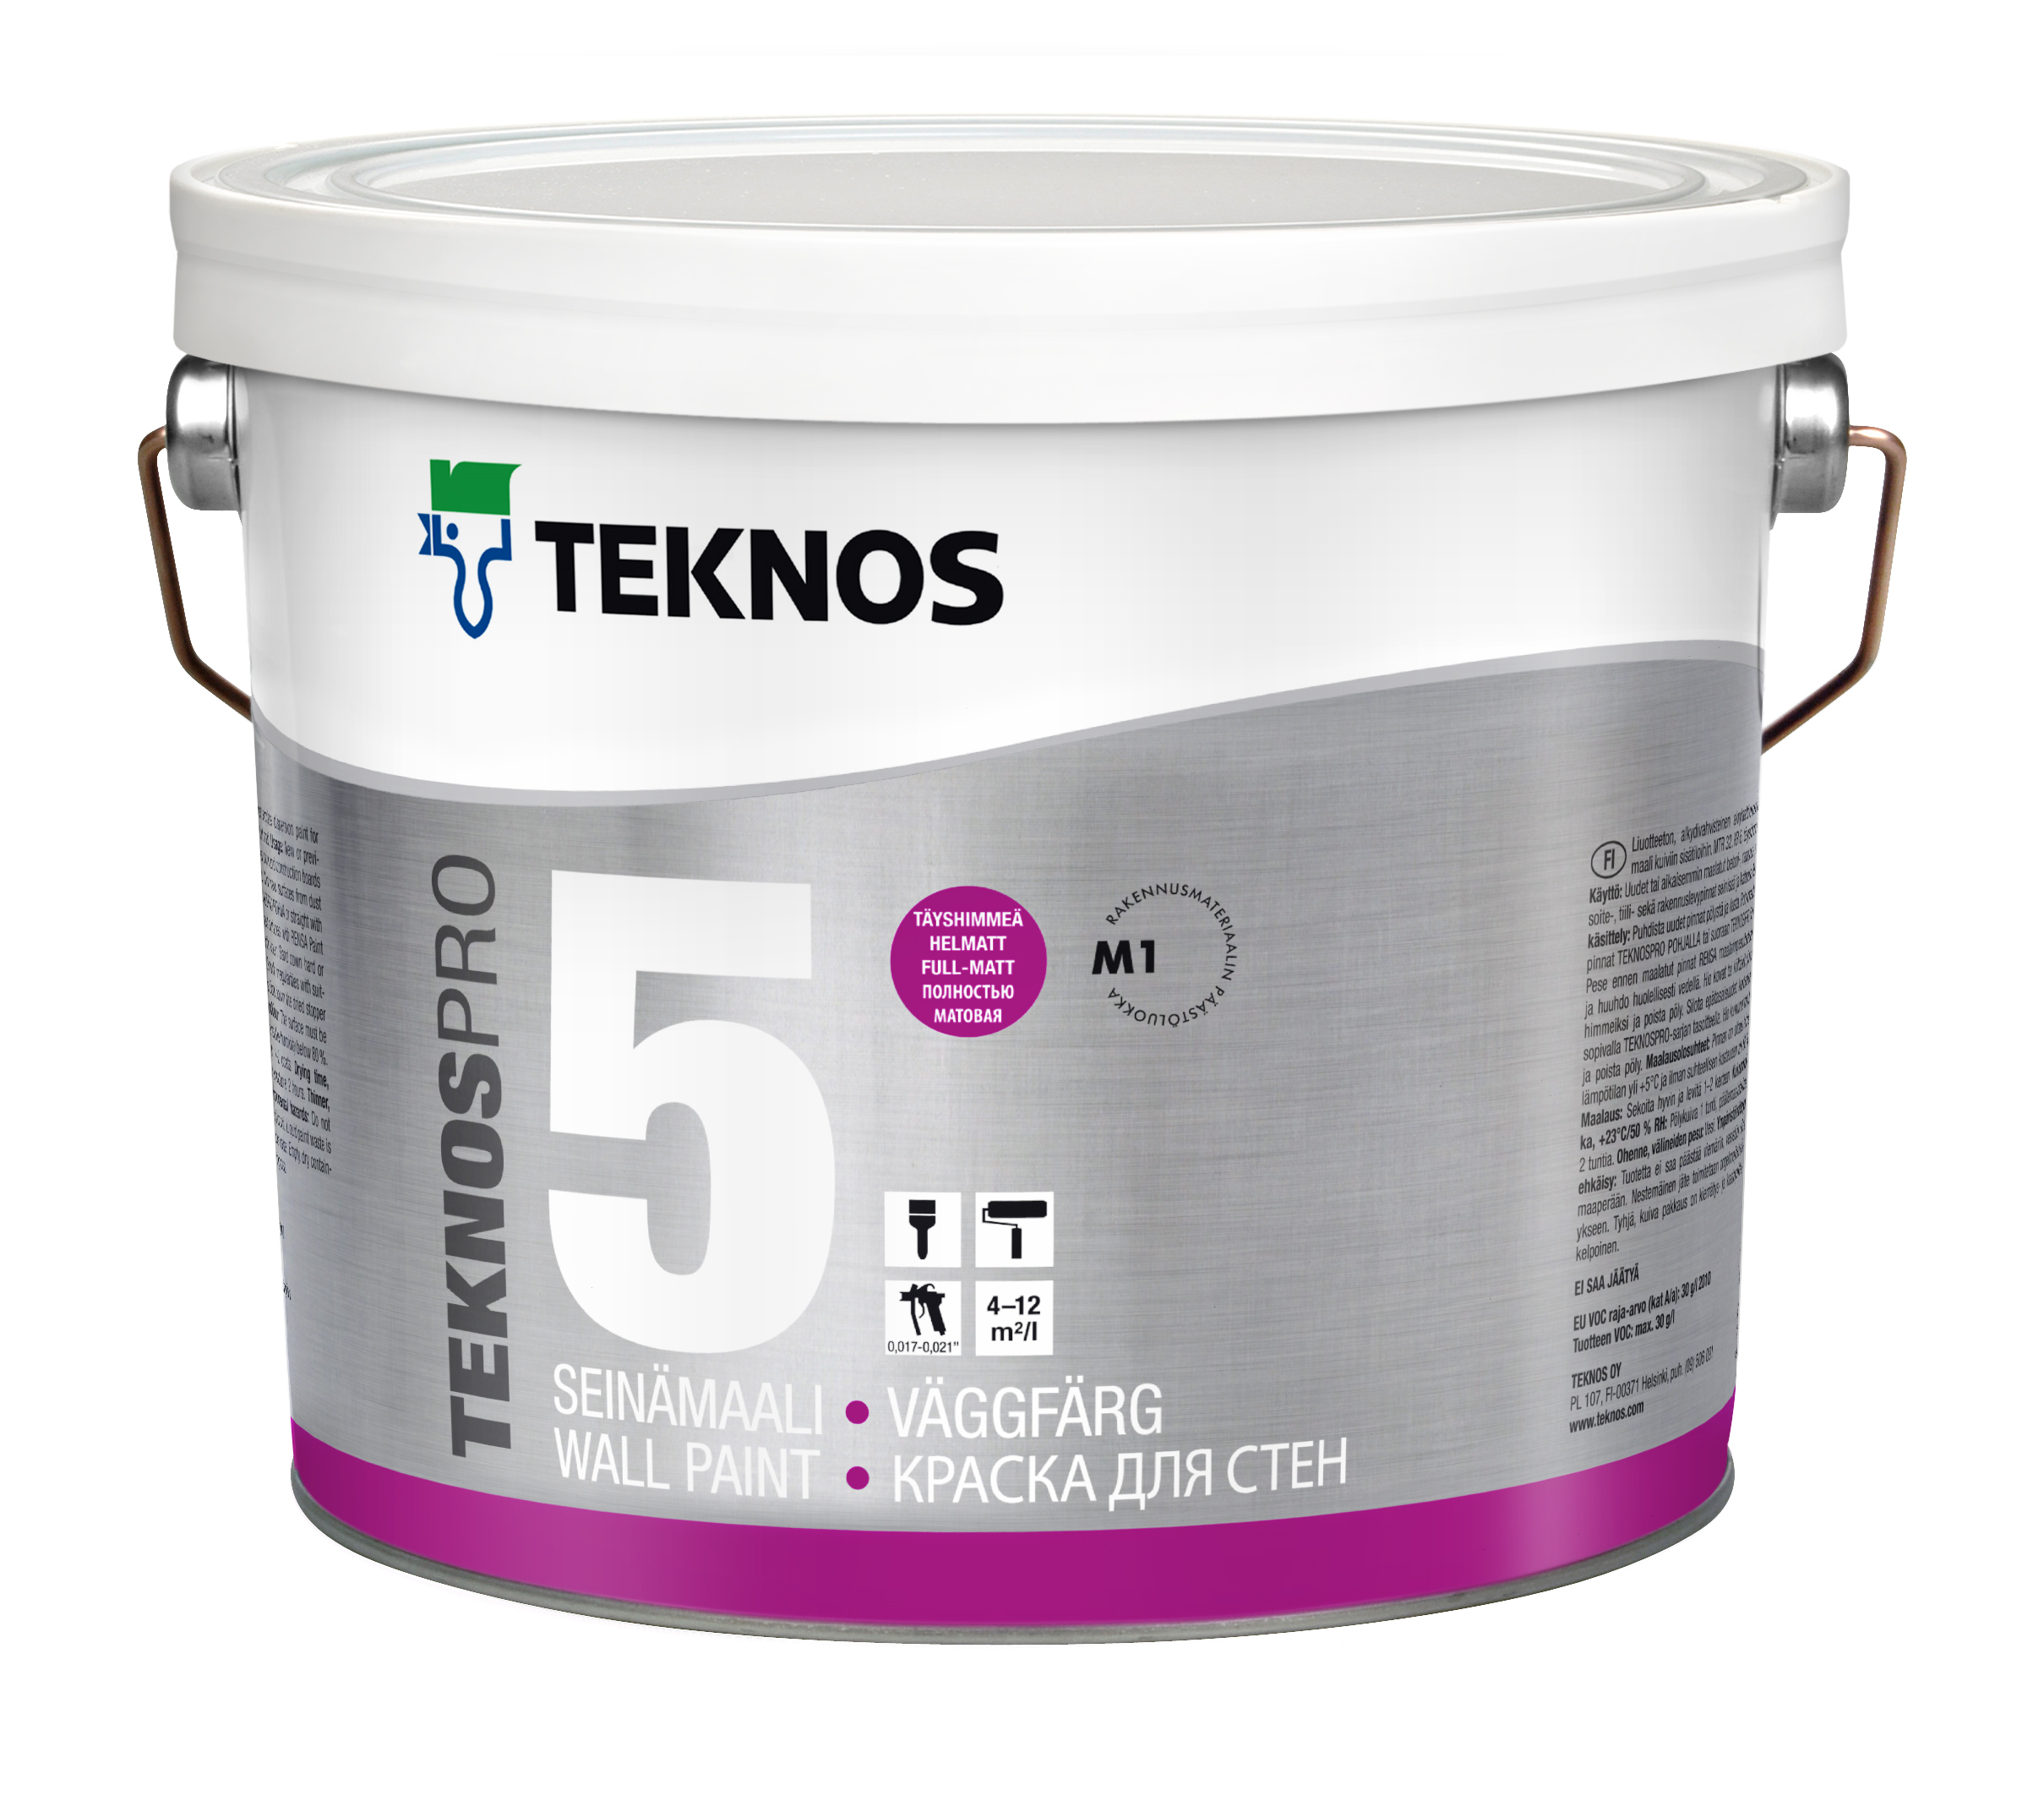 TeknosPro the eponymous portfolio, paints